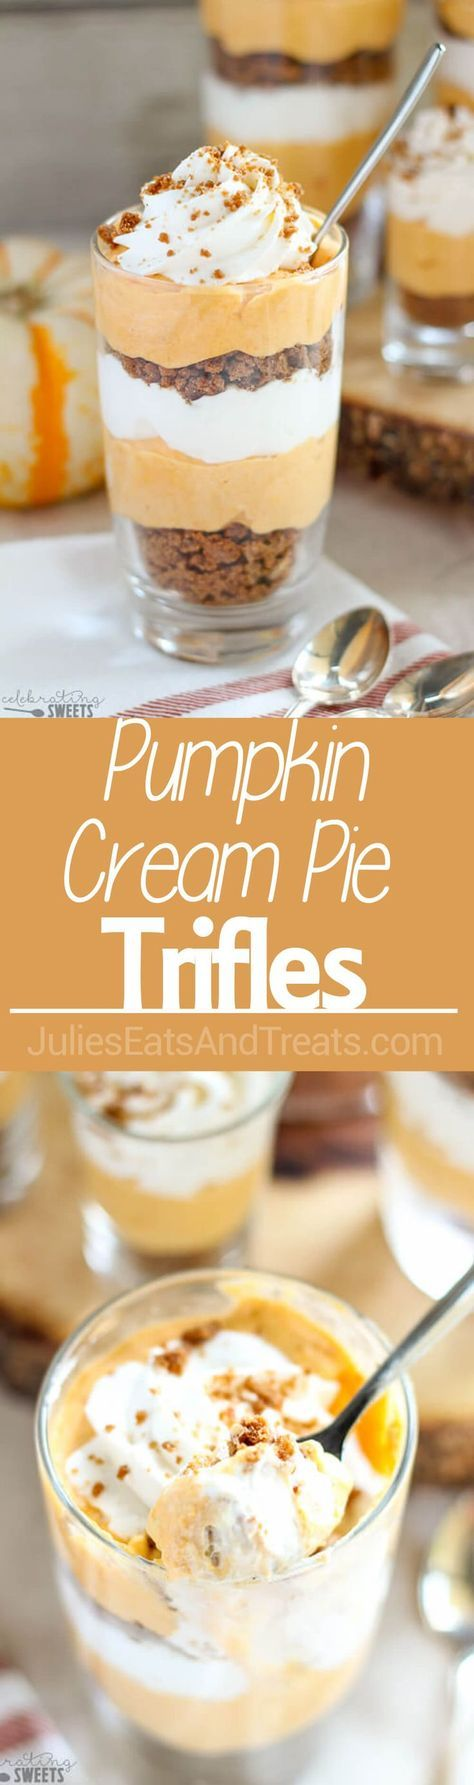 Pumpkin Cream Pie Trifles Dessert - Pumpkin cream cheese filling layered with whipped cream and crushed gingersnap cookies. Similar to pumpkin pie and pumpkin cheesecake, you will love this no-bake dessert perfect for Thanksgiving!